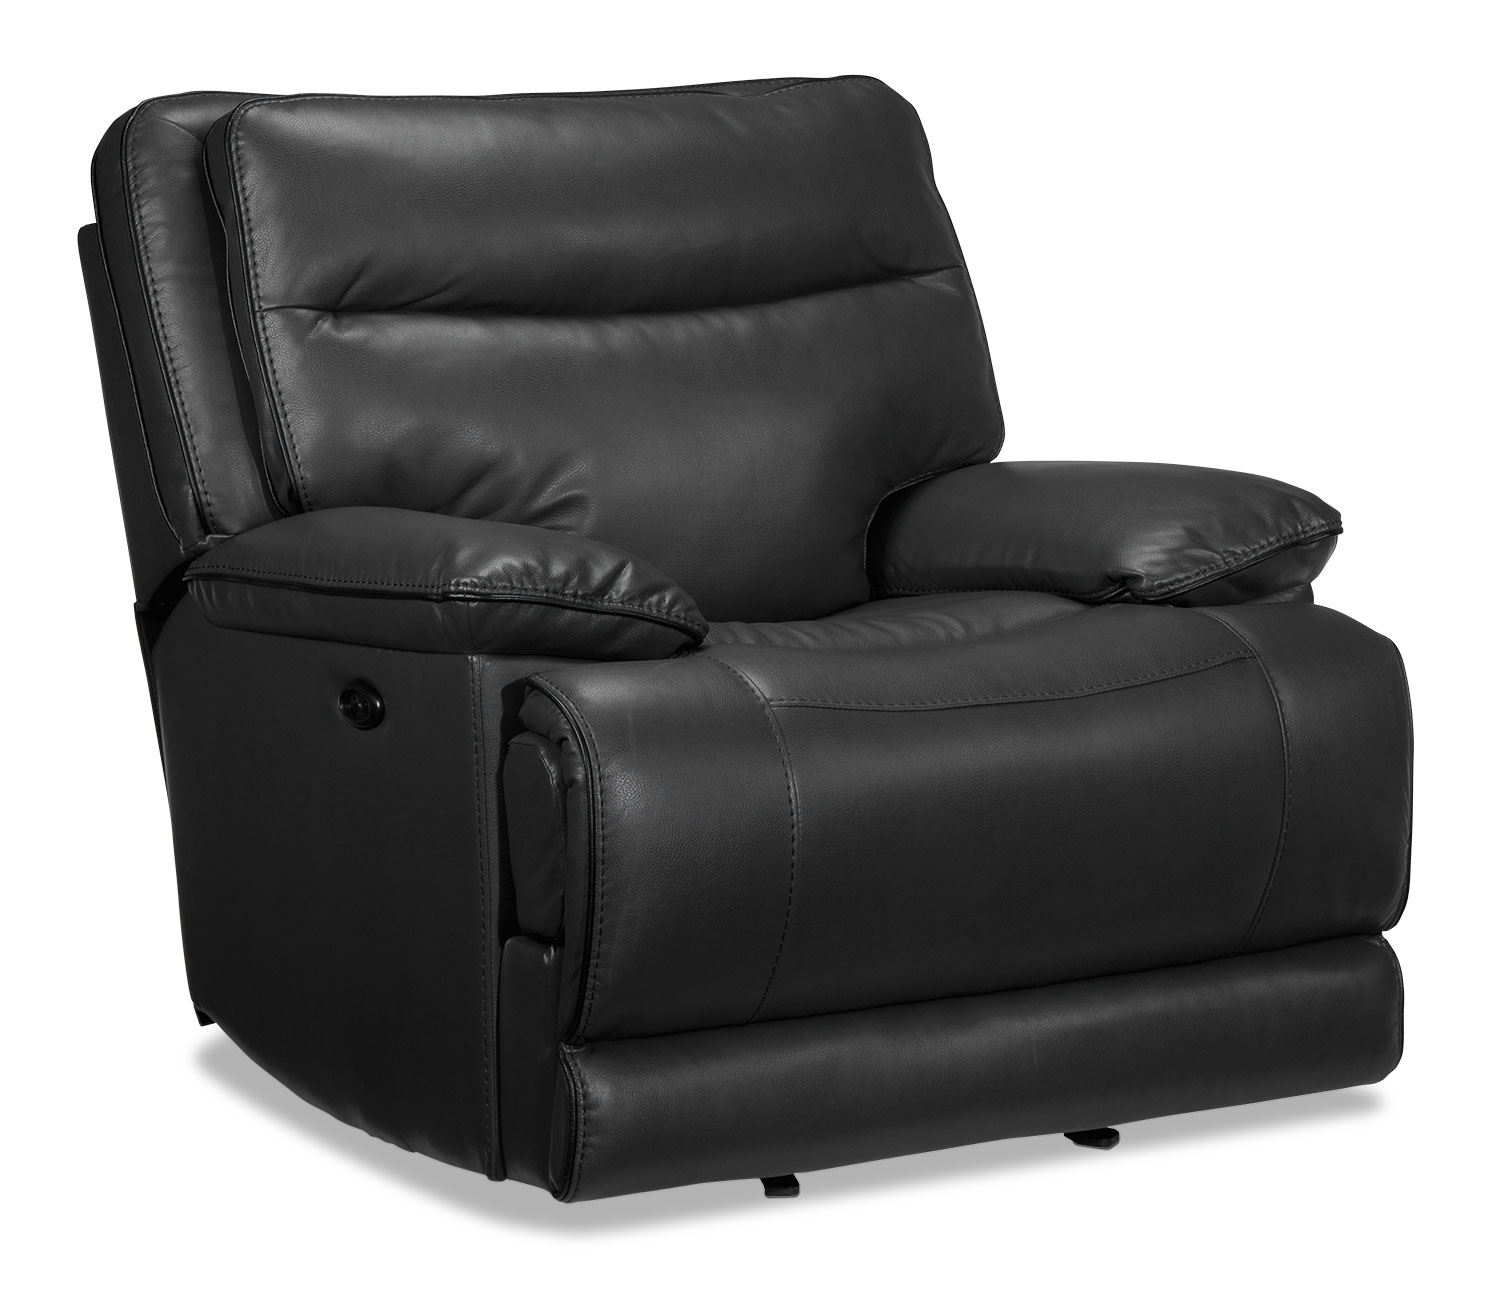 Living Room Furniture - Lanette Power Recliner - Smoke Grey